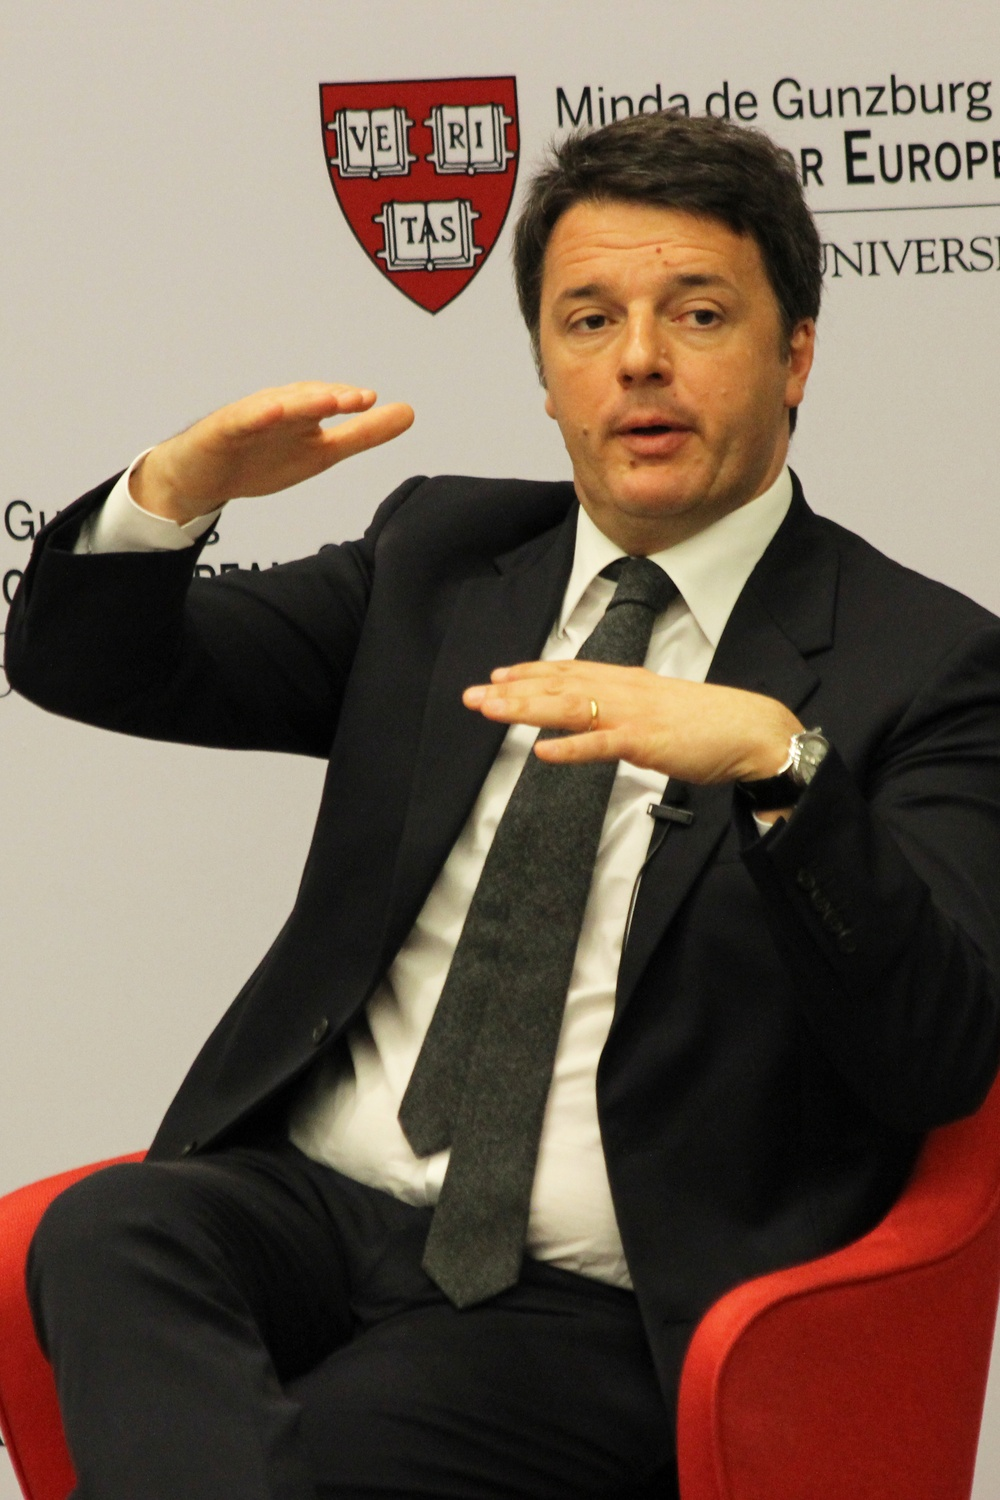 Italian Prime Minister Matteo Renzi speaks to a packed auditorium at the Harvard Art Museums Thursday morning. Mr. Renzi highlighted the importance of valuing individuals as unique citizens instead of mere numbers in light of recent terror attacks in Europe.